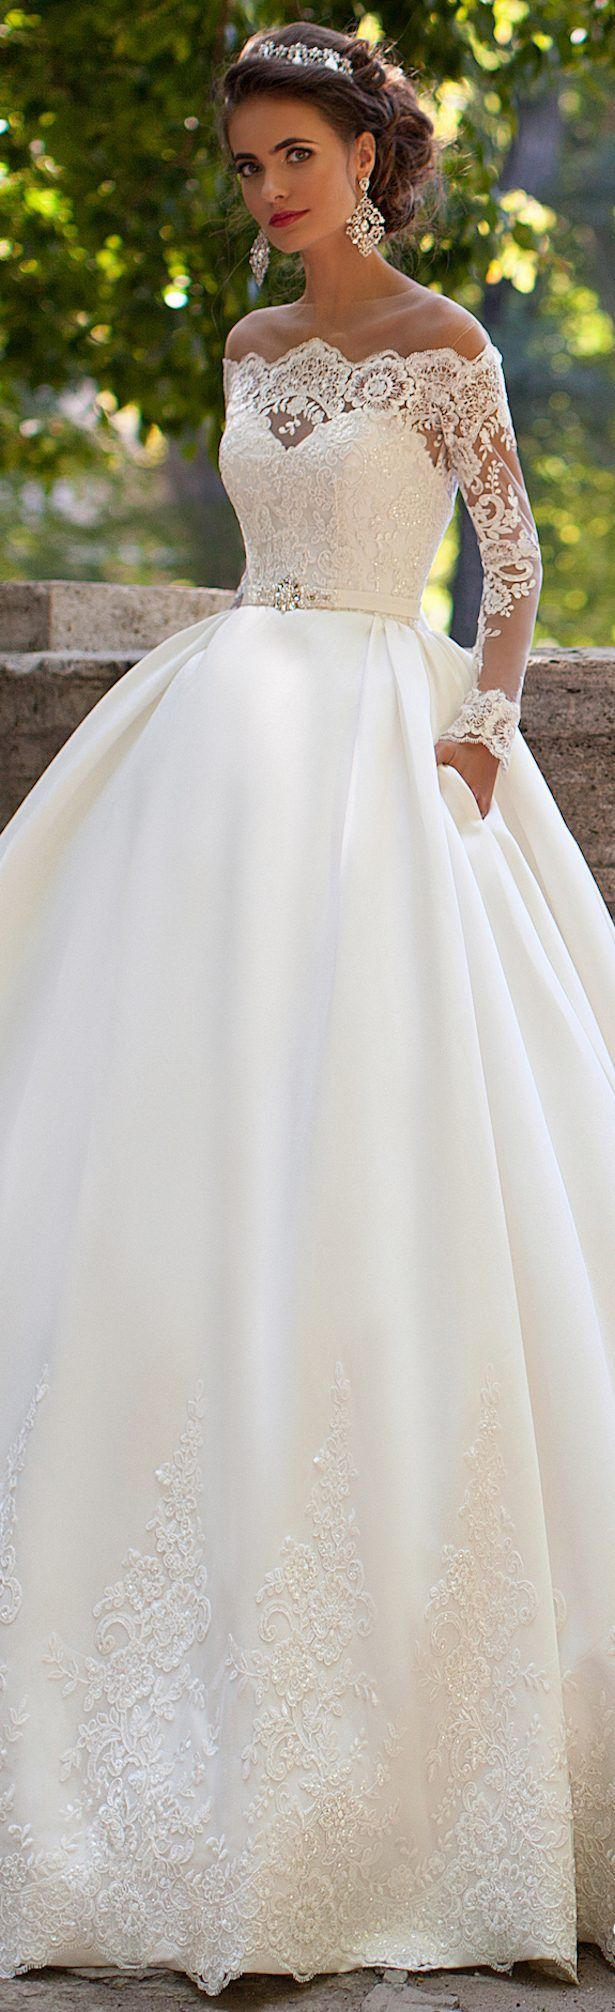 Superb Best Wedding Dresses of